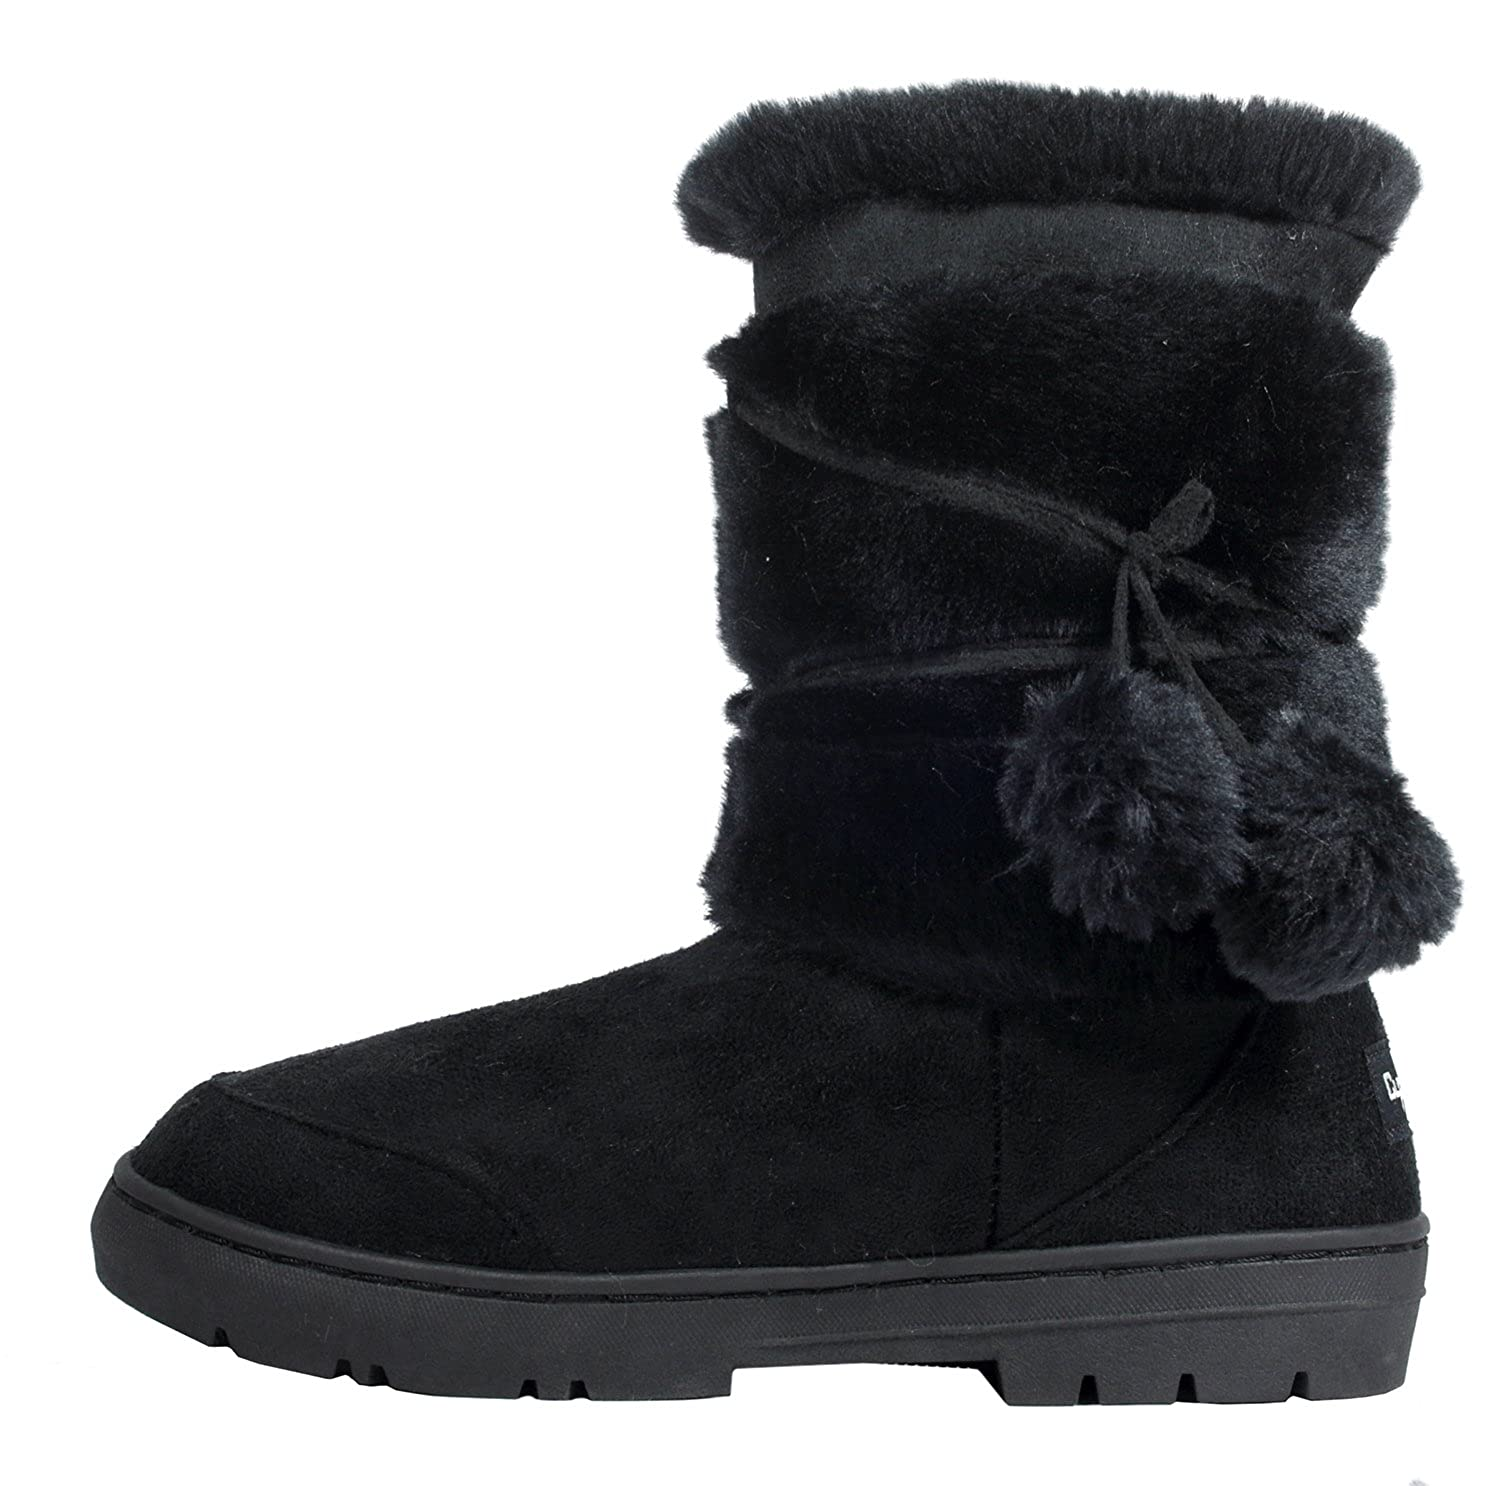 Clpp'li Womens Pom Pom Fully Fur Lined Waterproof Winter Snow Boots